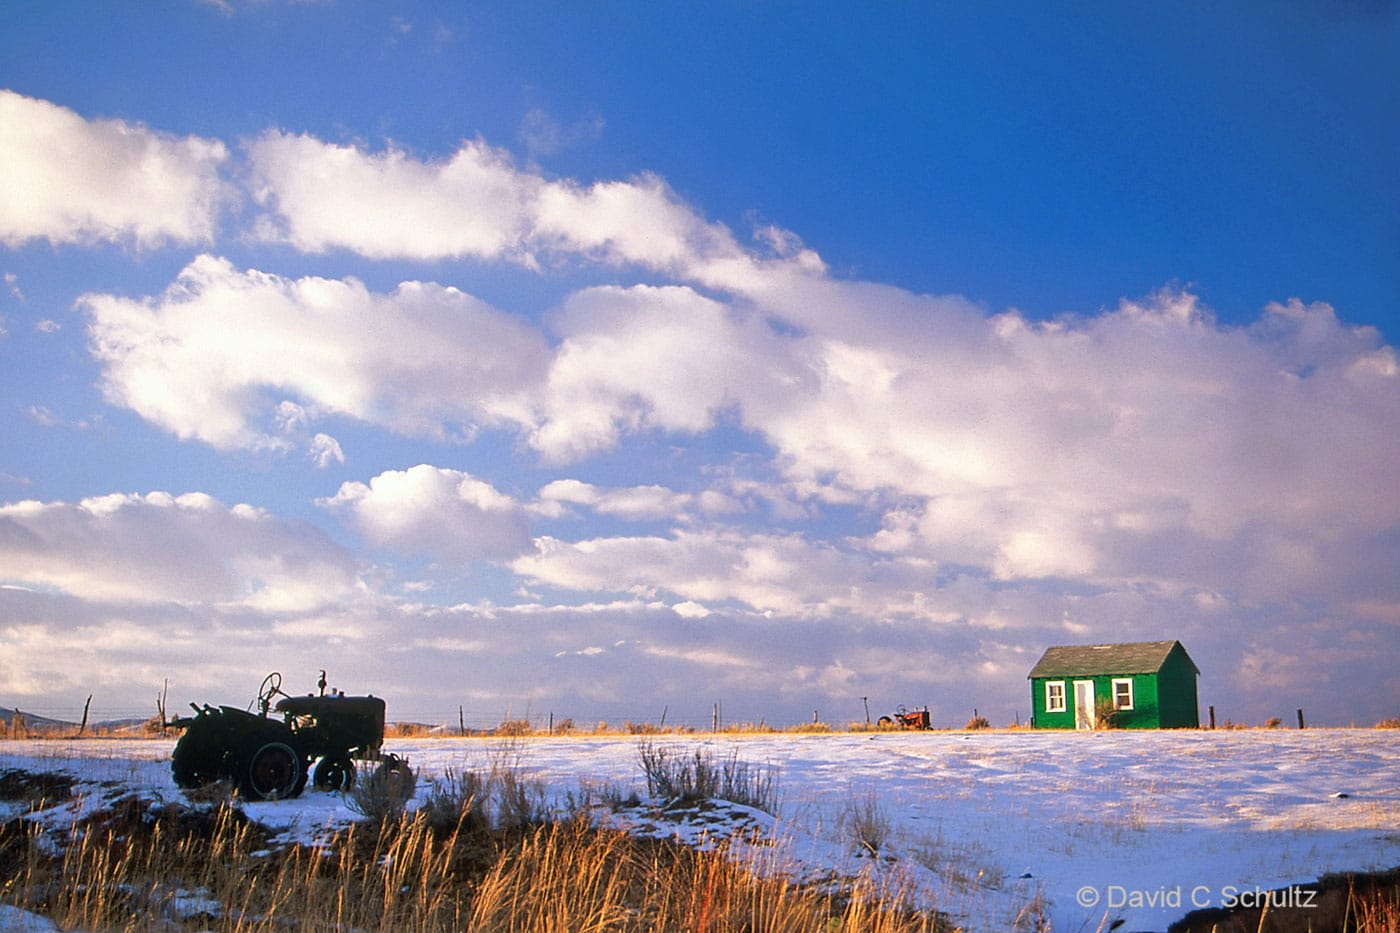 Old homestead during winter in Woodruff, UT - Image #13-1223